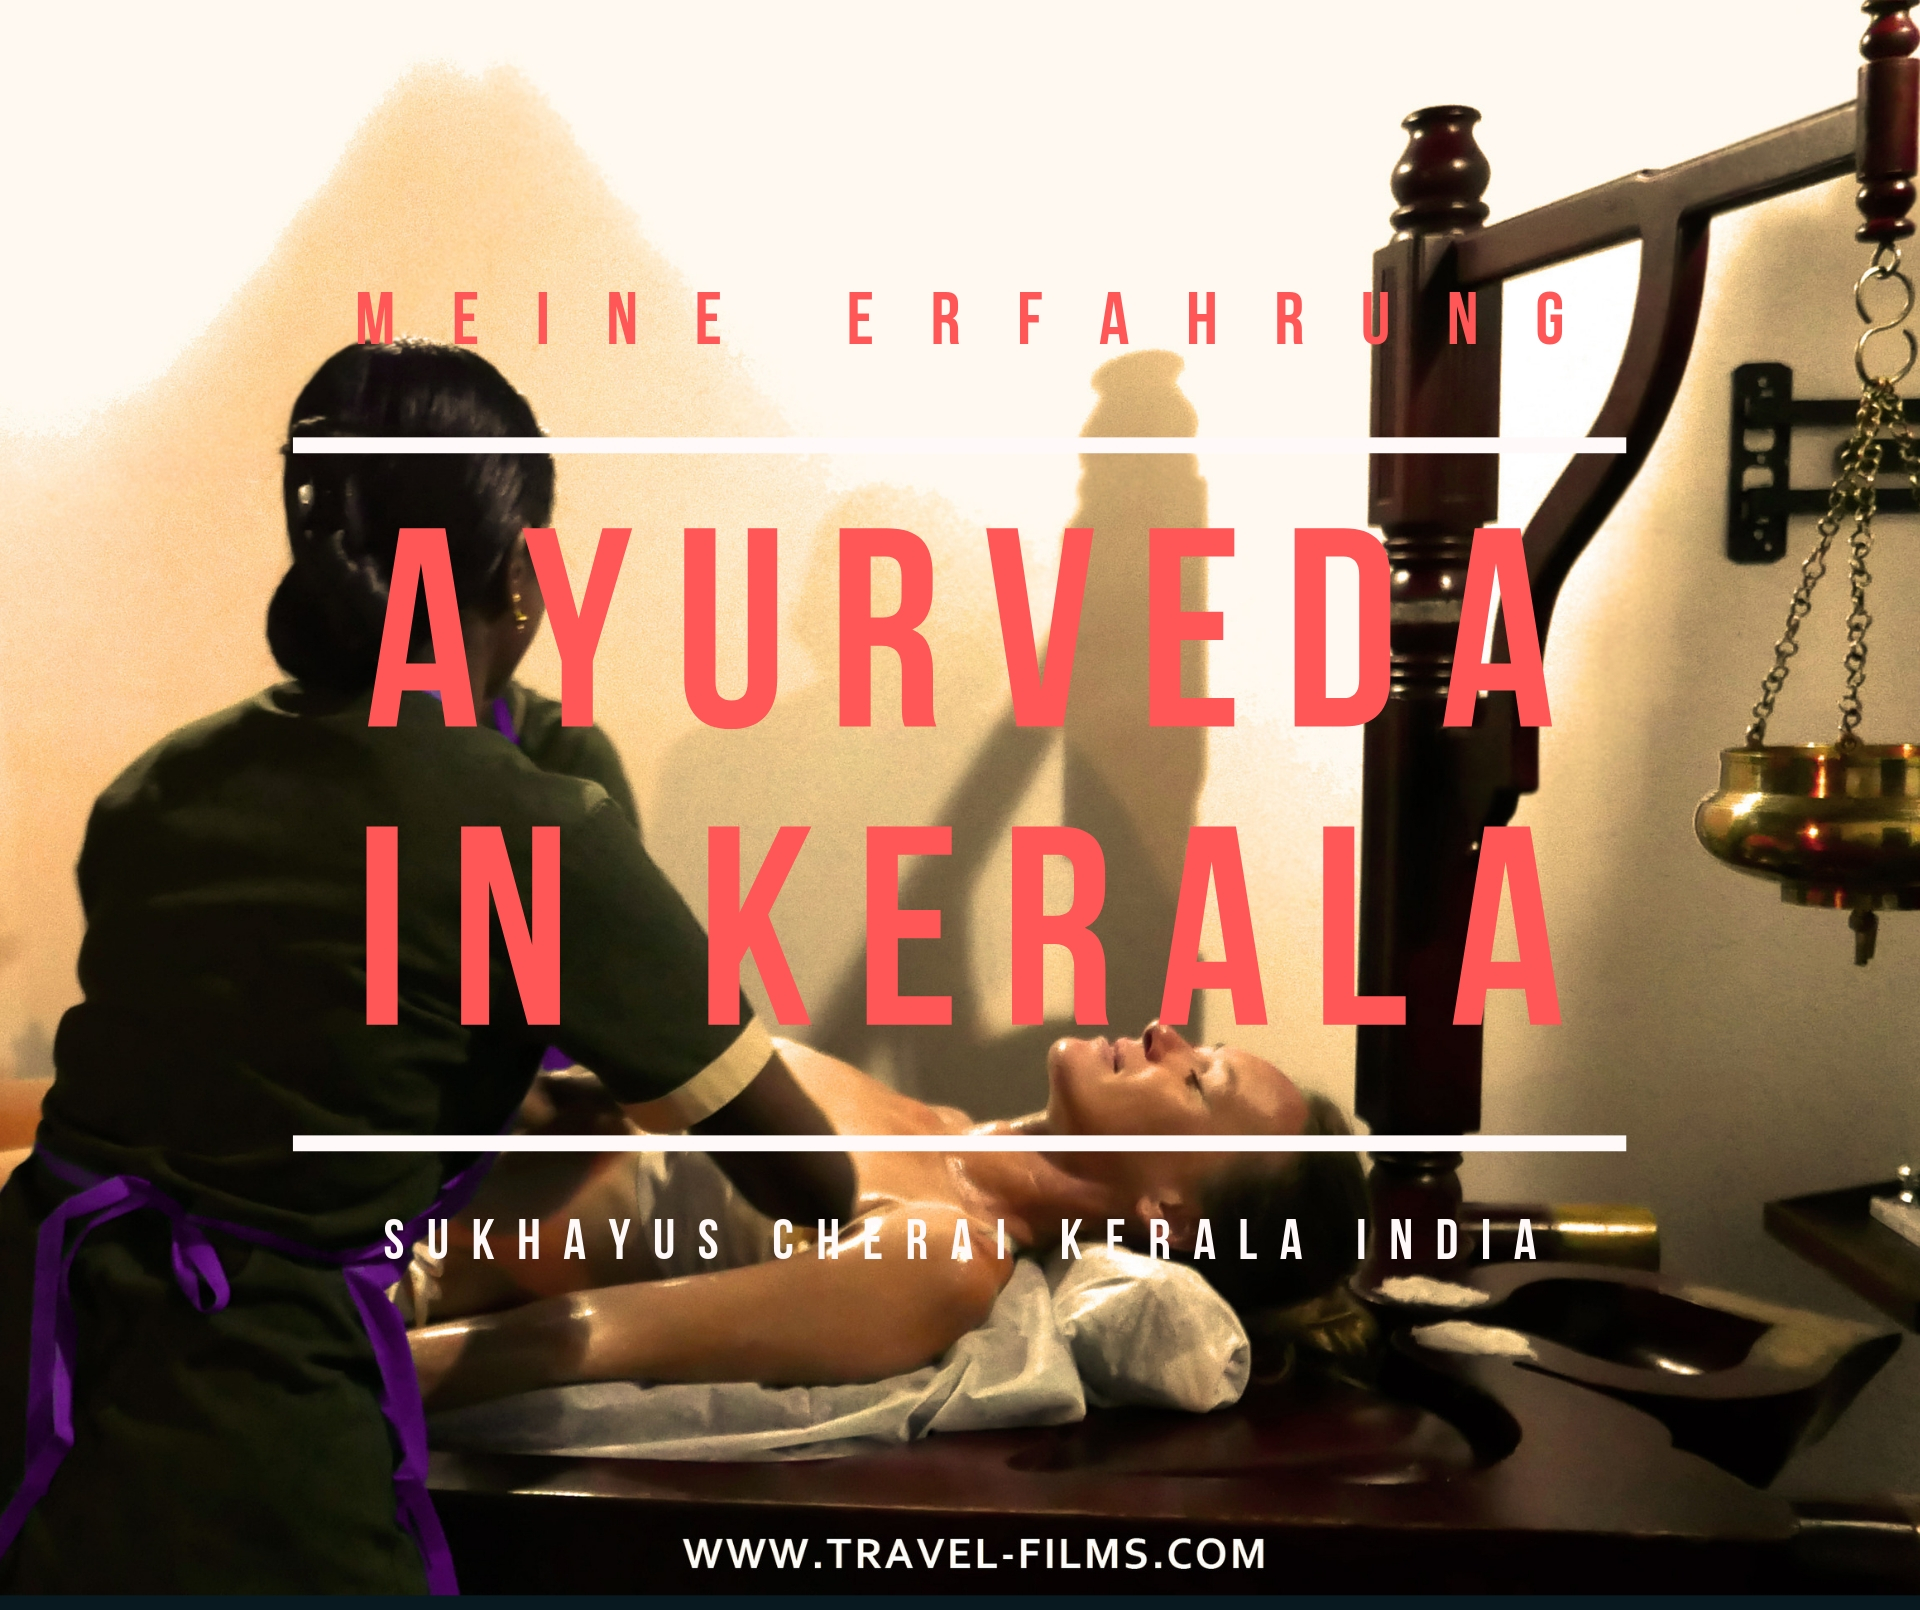 Ayurveda Chrai Beach travel films